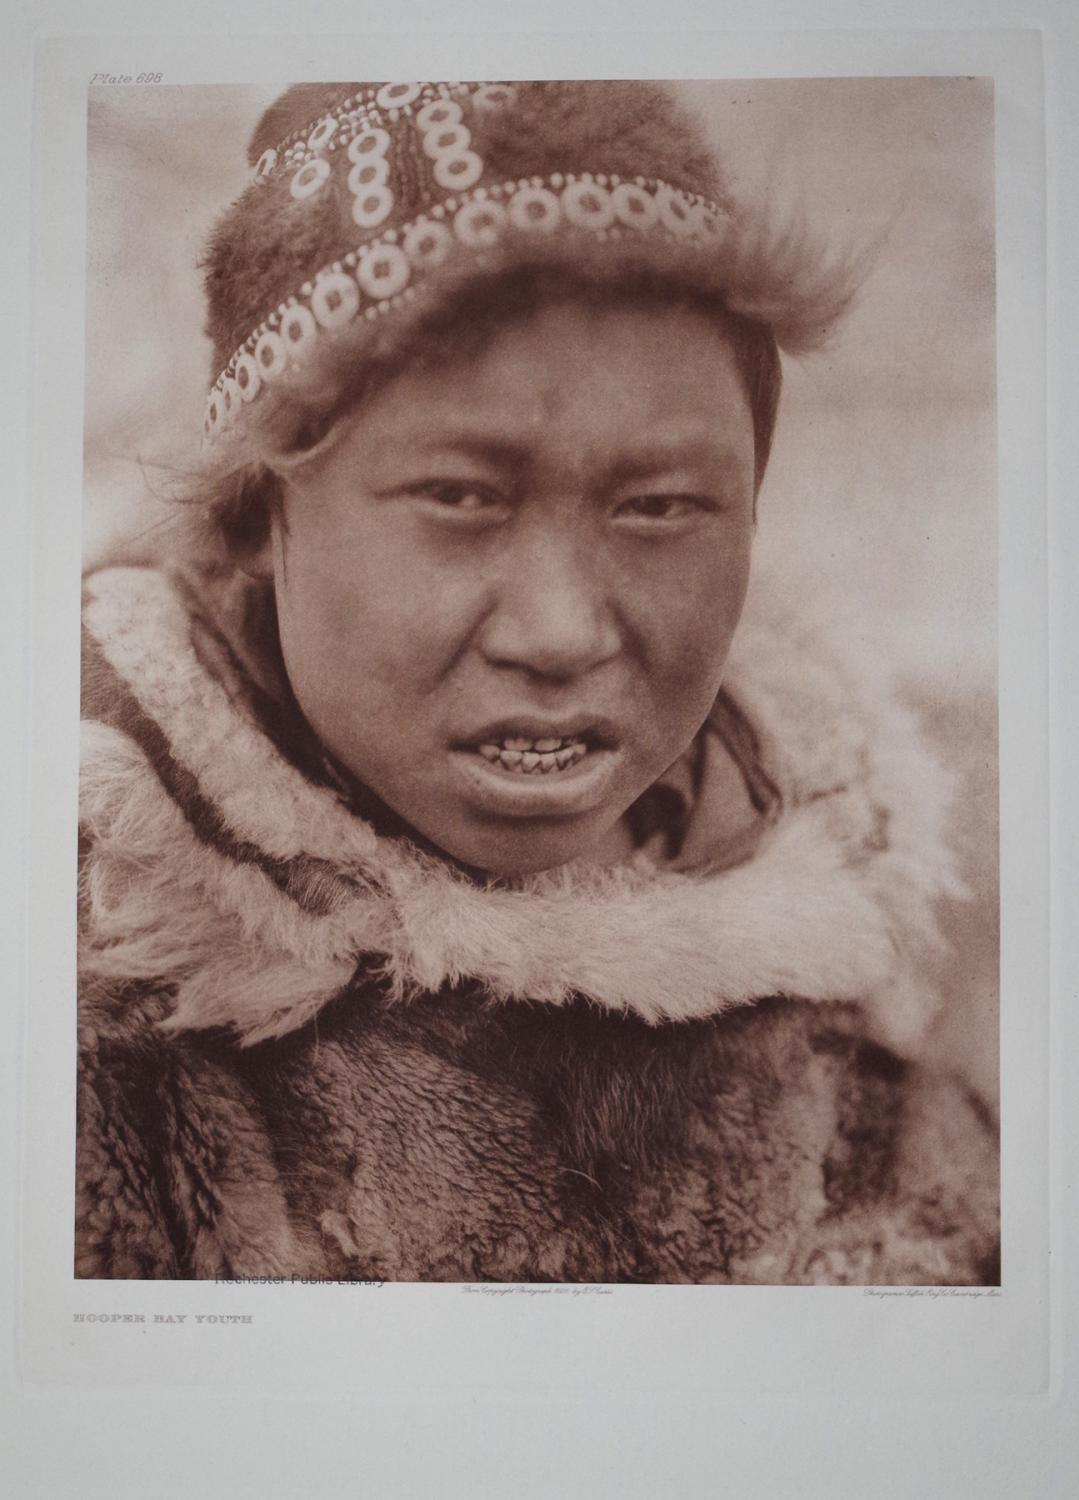 Hooper Bay Youth, Plate 698 from The North American Indian. Portfolio XX: Edward S. Curtis (1868-...